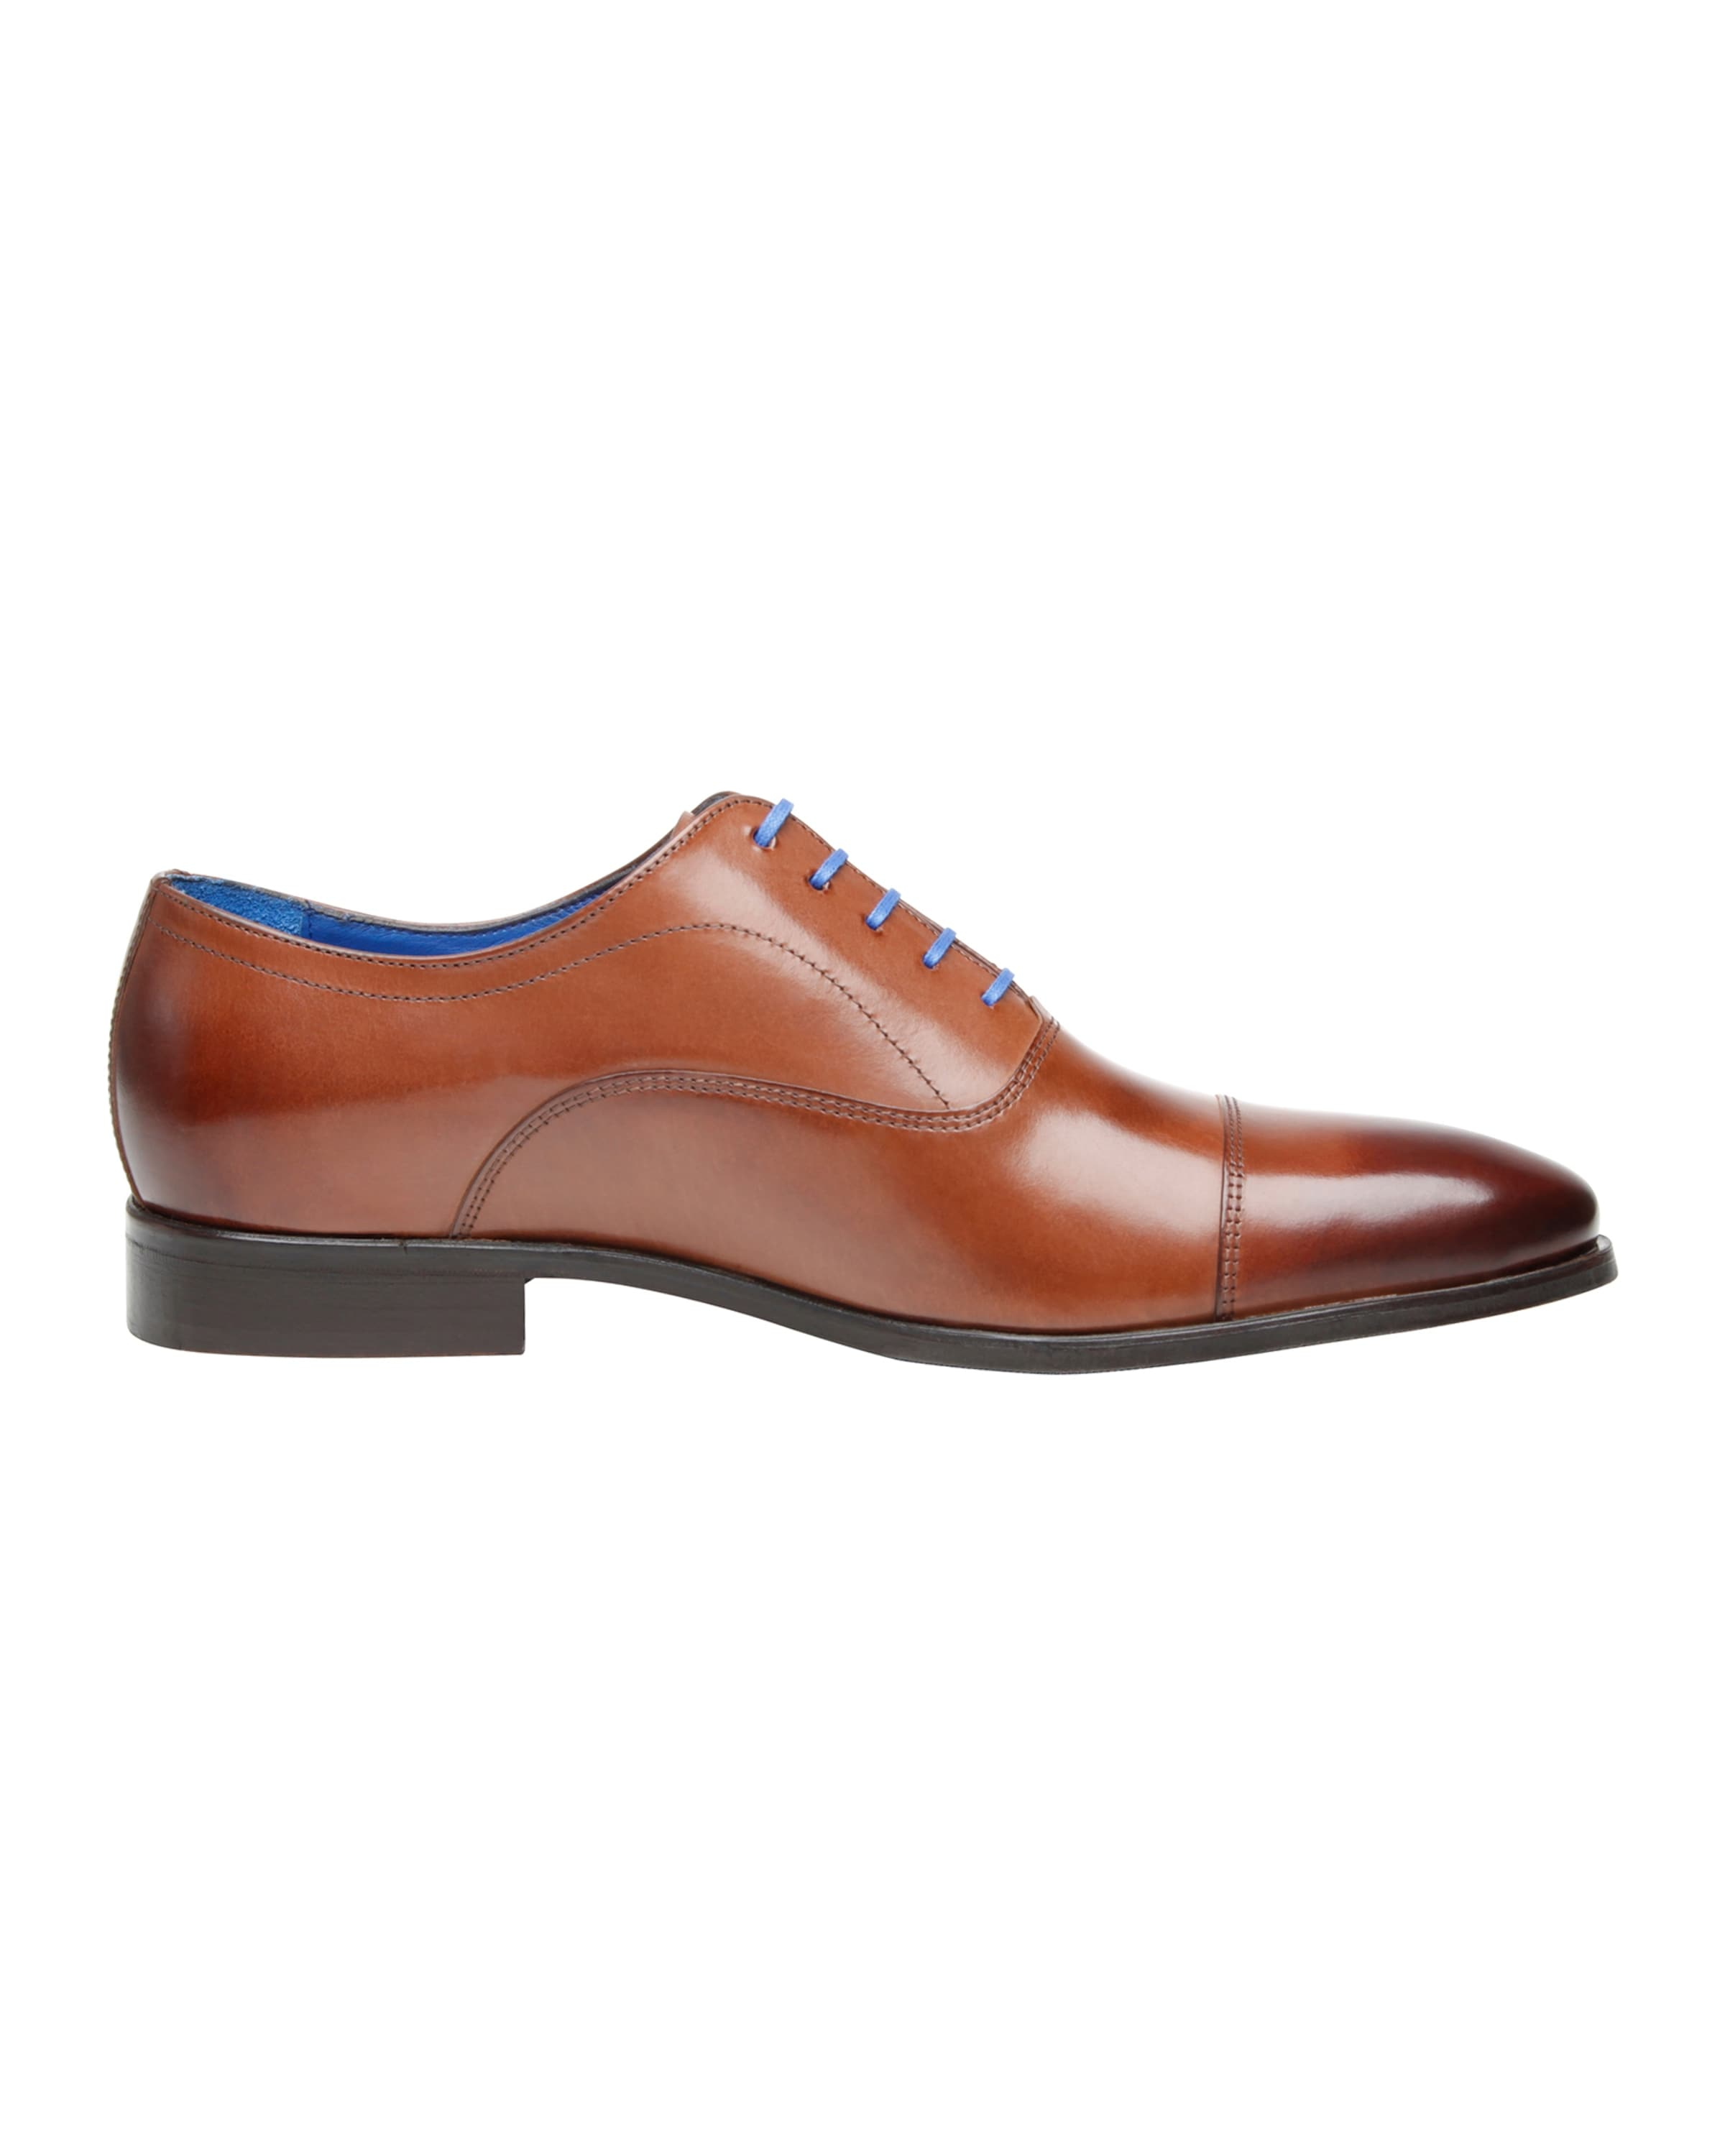 'no5602 Bl' Businessschuhe Cognac Shoepassion In oWrxdBeC